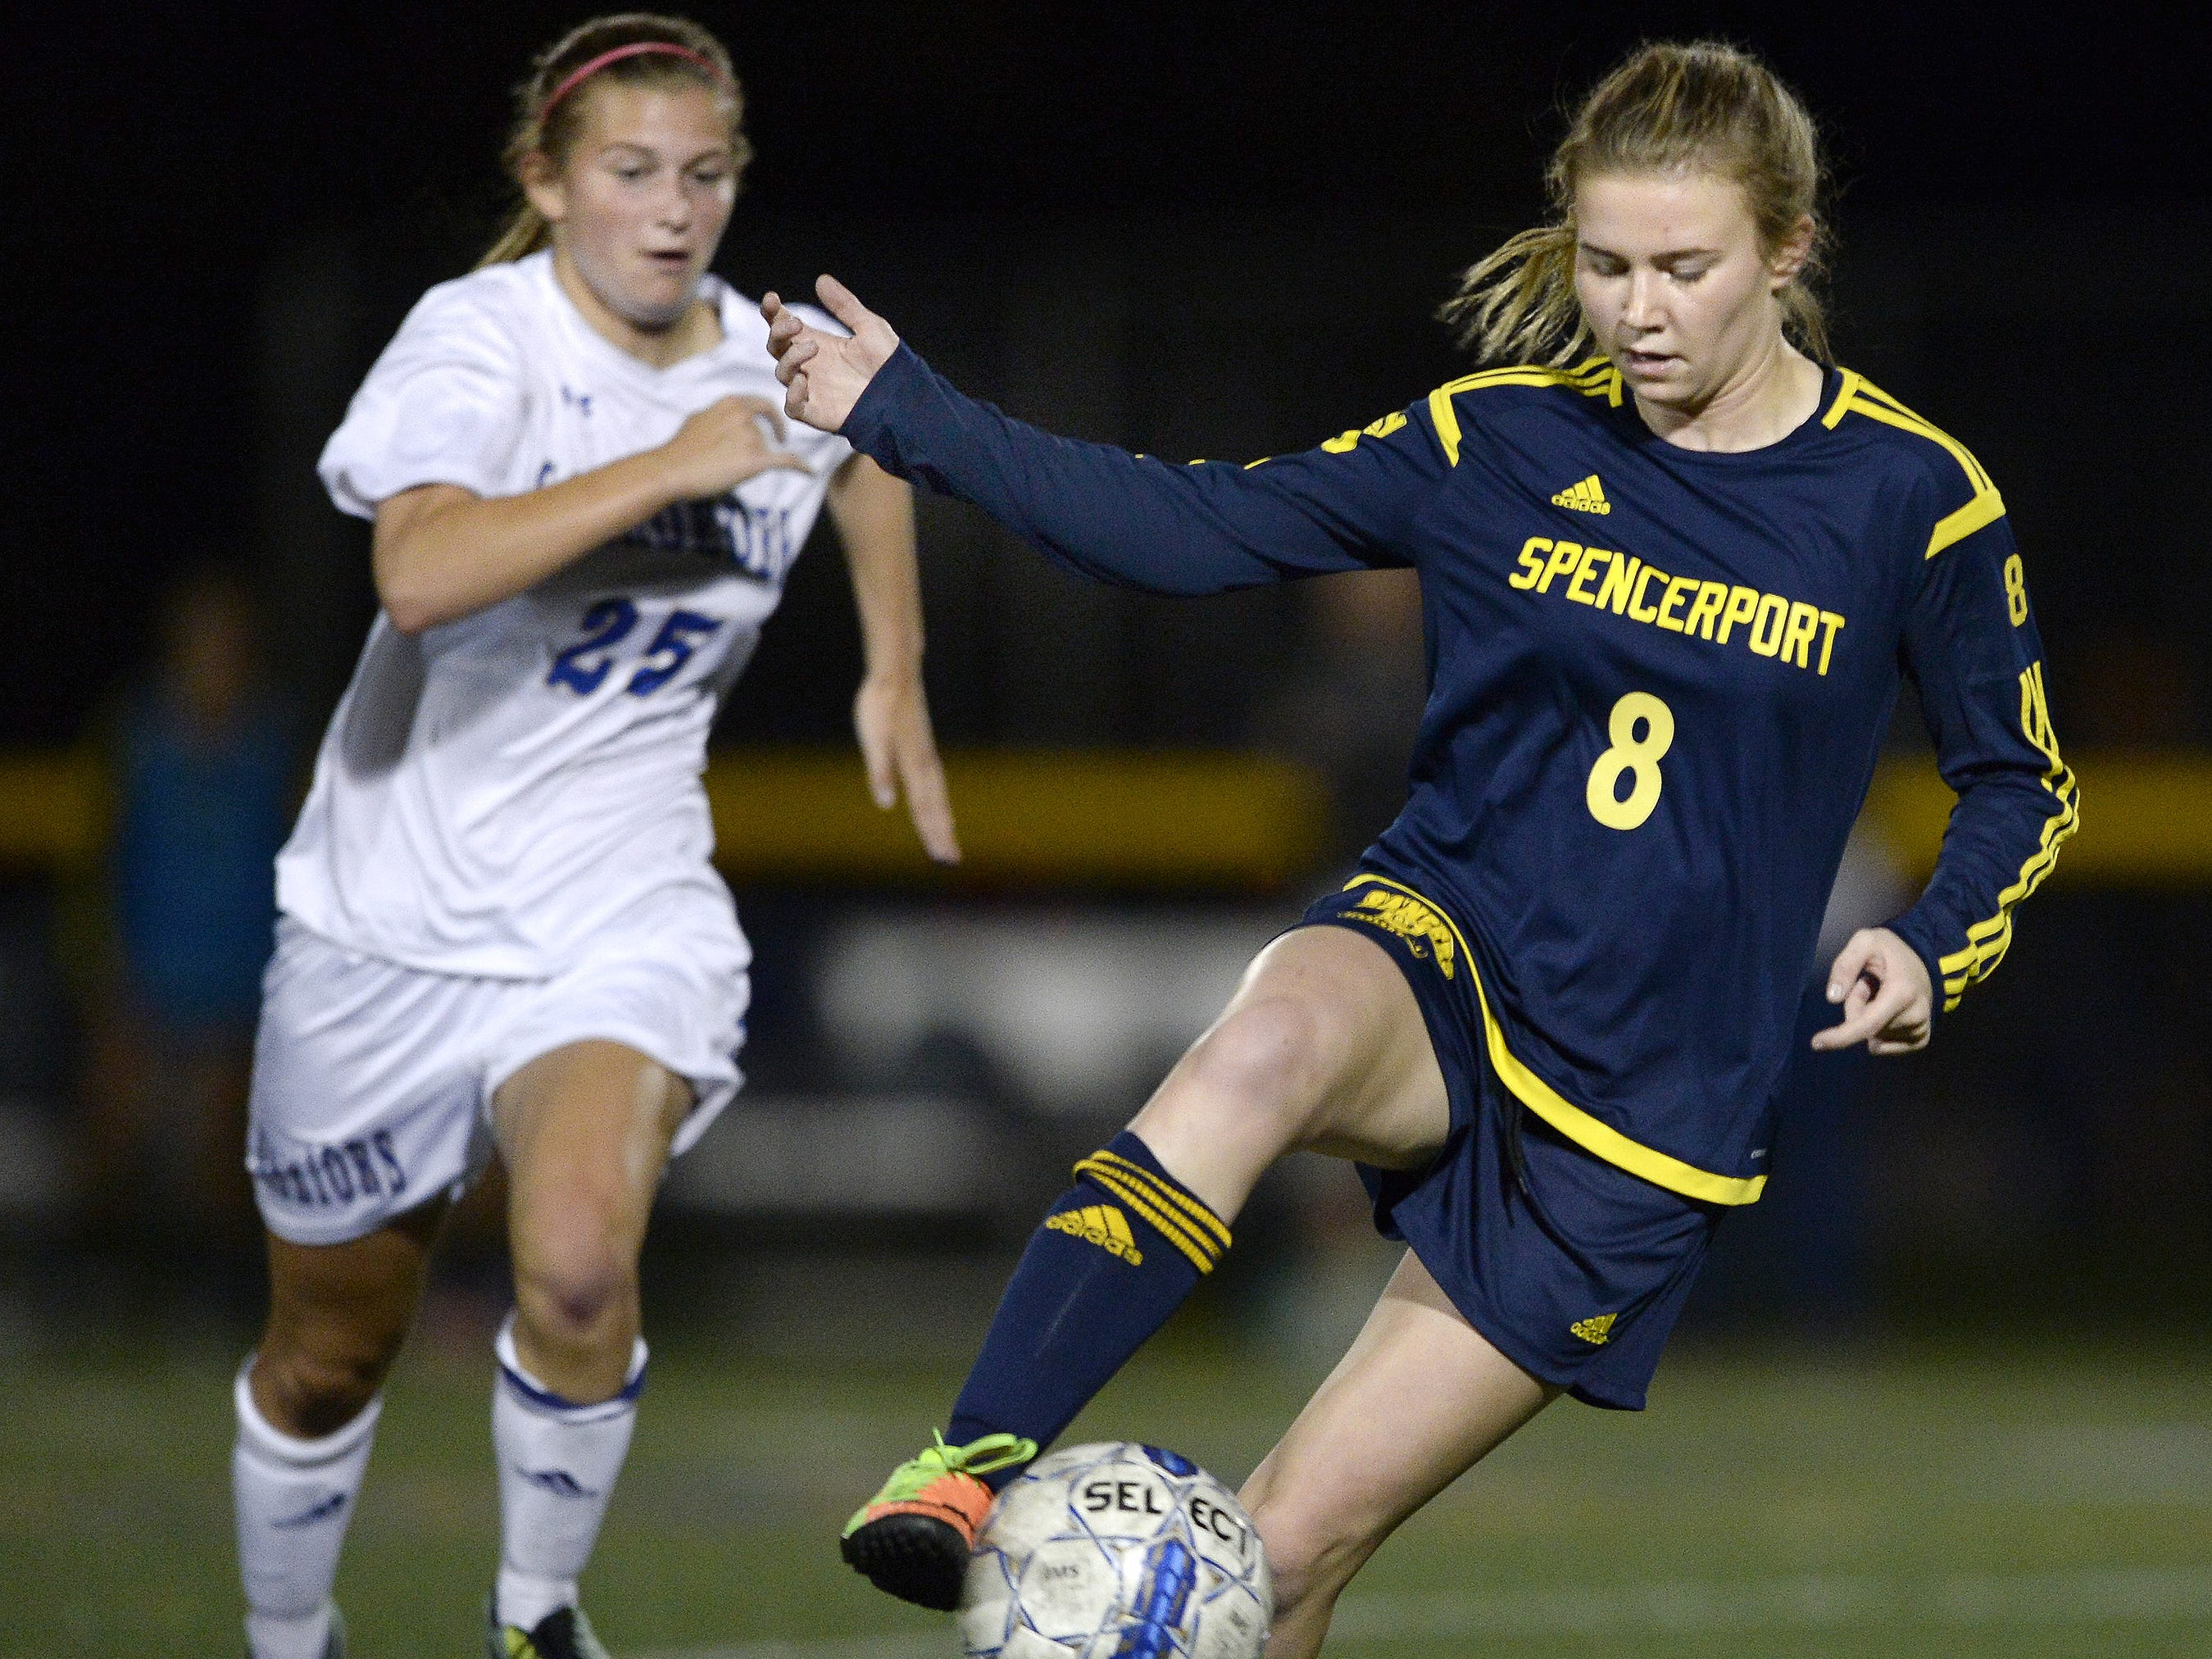 Spencerport's Leah Wengender settles the ball while pressured by Webster Schroeder's Rachel Wengender during a regular season game at Webster Schroeder High School on Tuesday, Oct. 10, 2017.